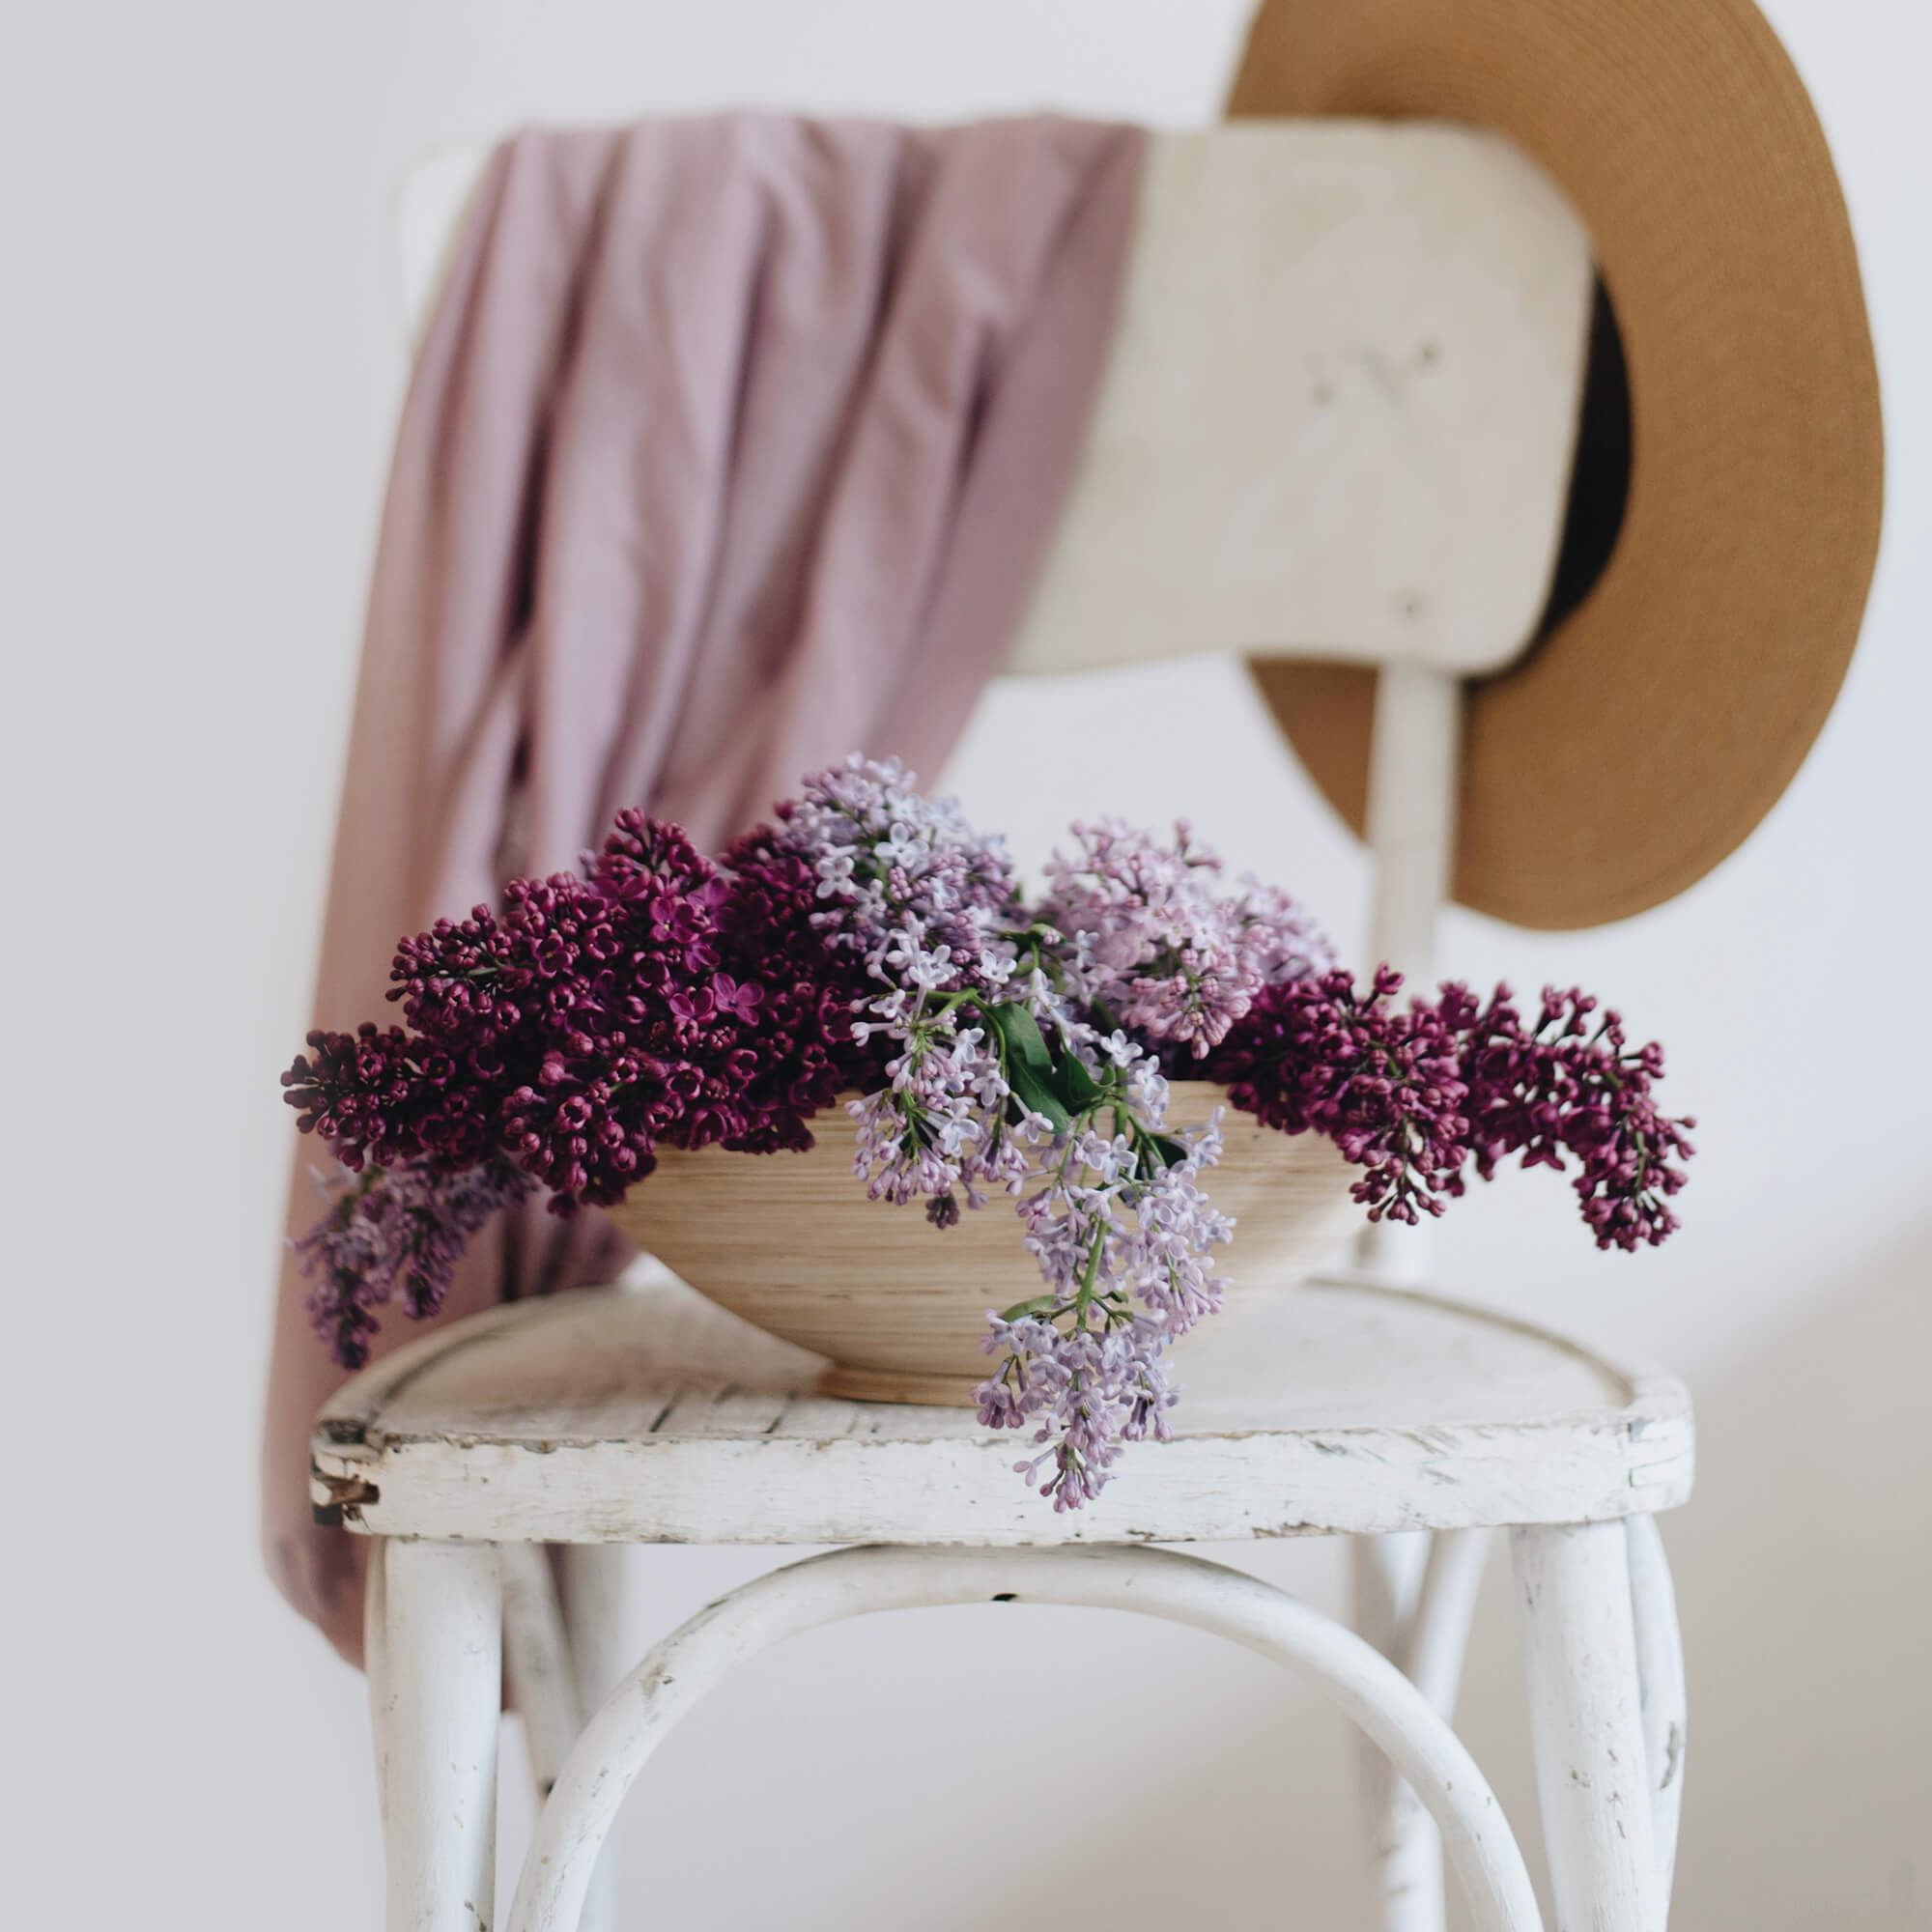 Purple flowers on a chair